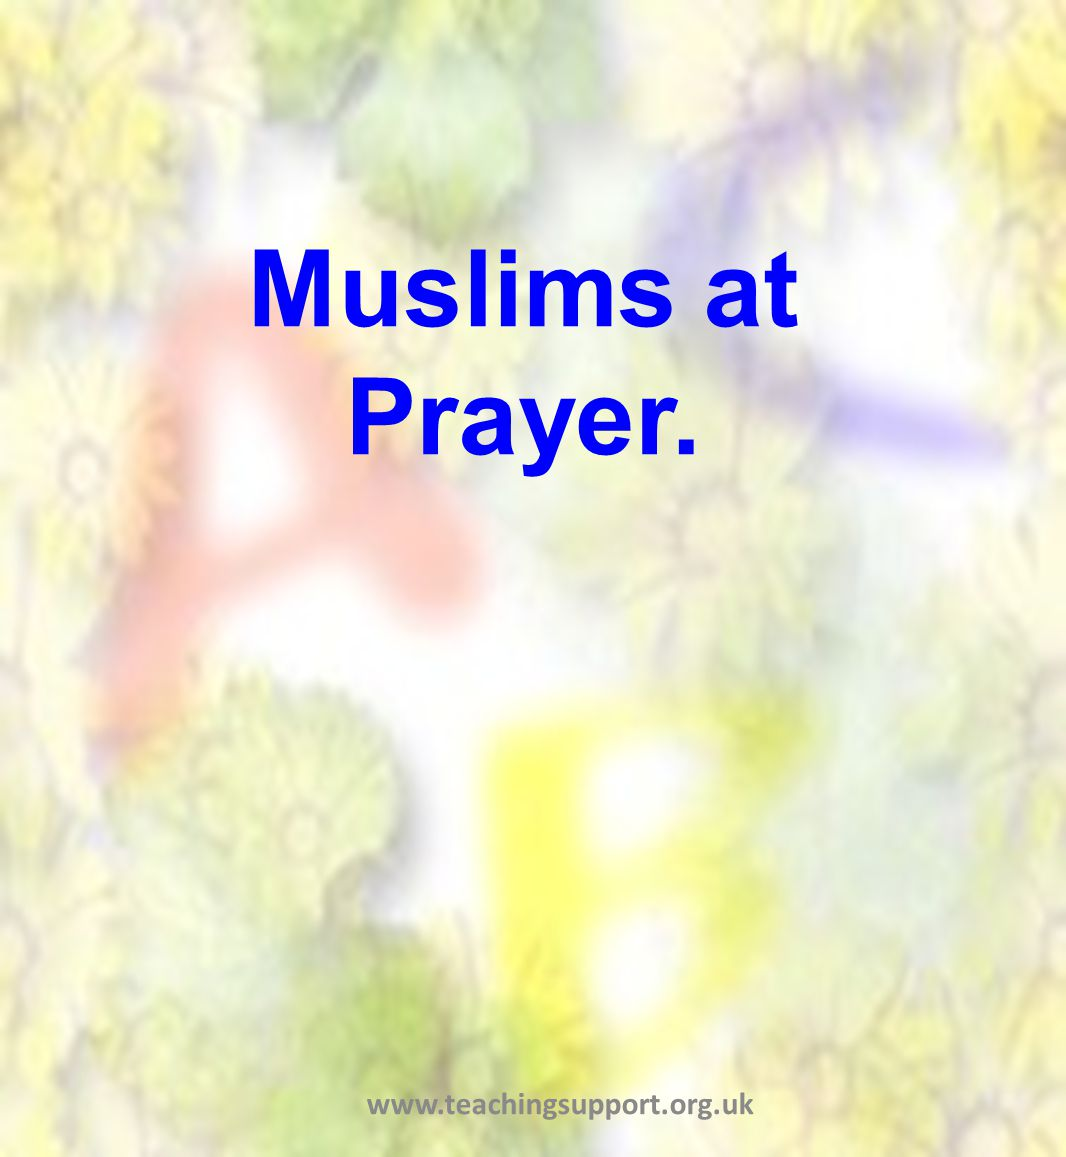 Muslims at Prayer. www.teachingsupport.org.uk